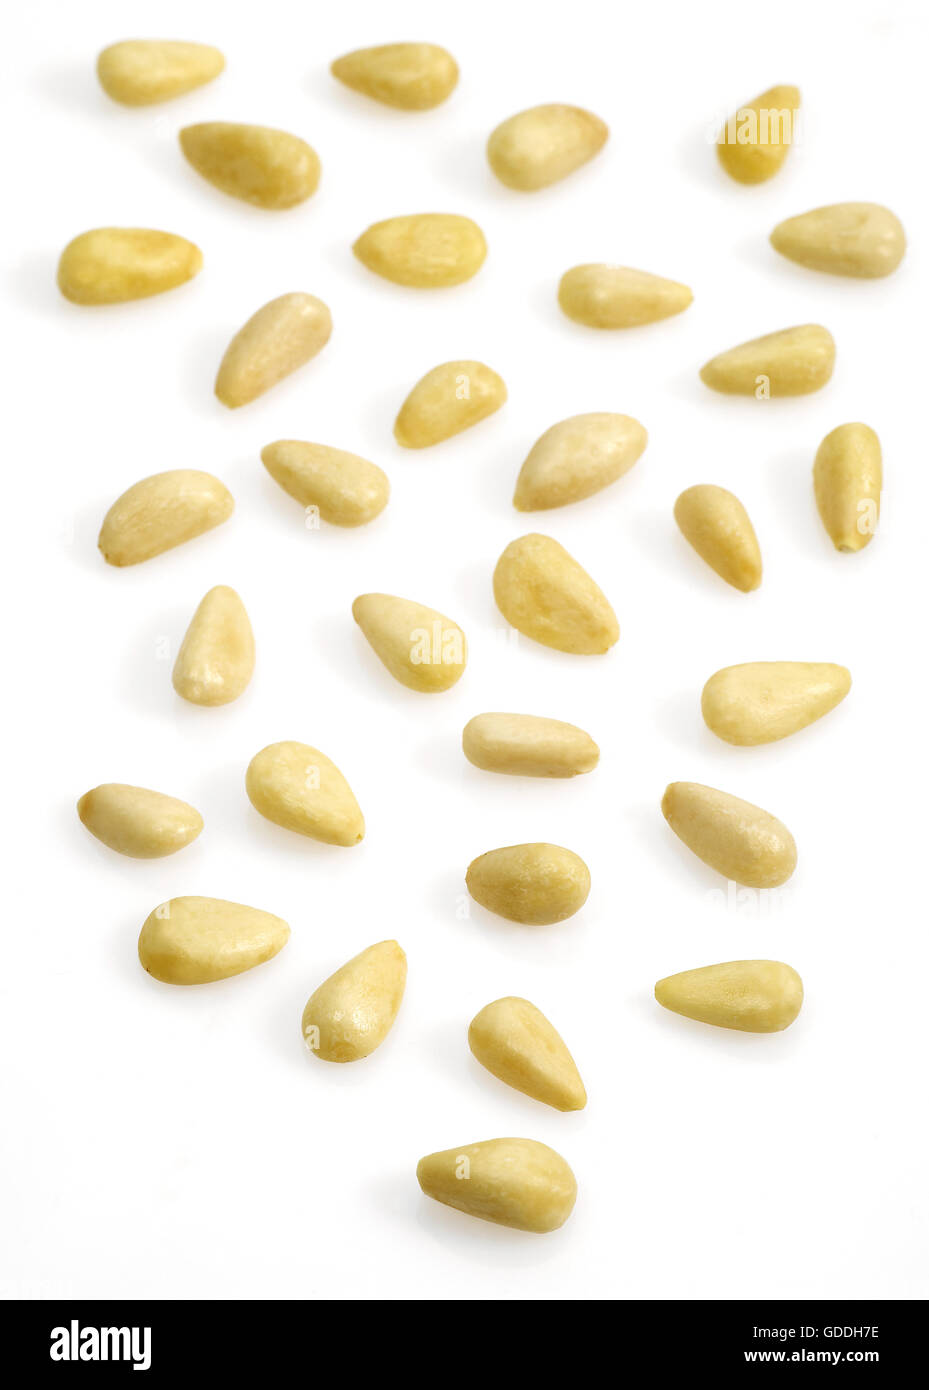 Pine Kernel or Pine Nut, pinus sp, Nuts against White Background - Stock Image